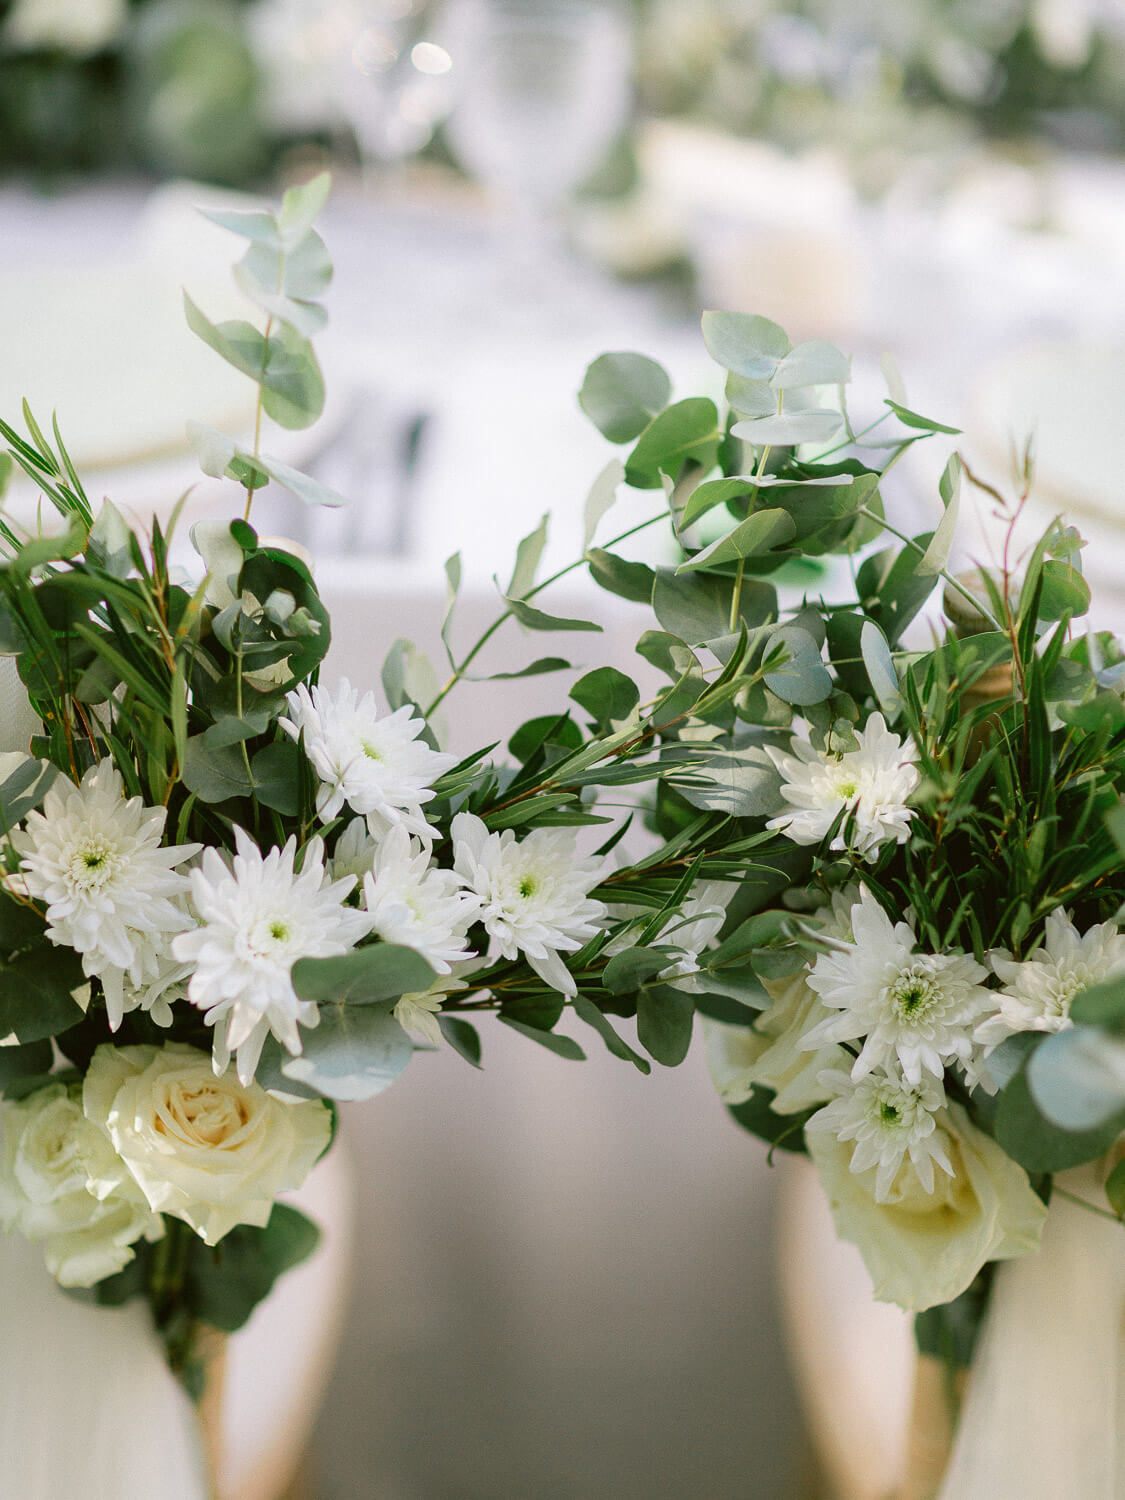 floral details for outdoor wedding reception dinner by Portugal Wedding Photographer